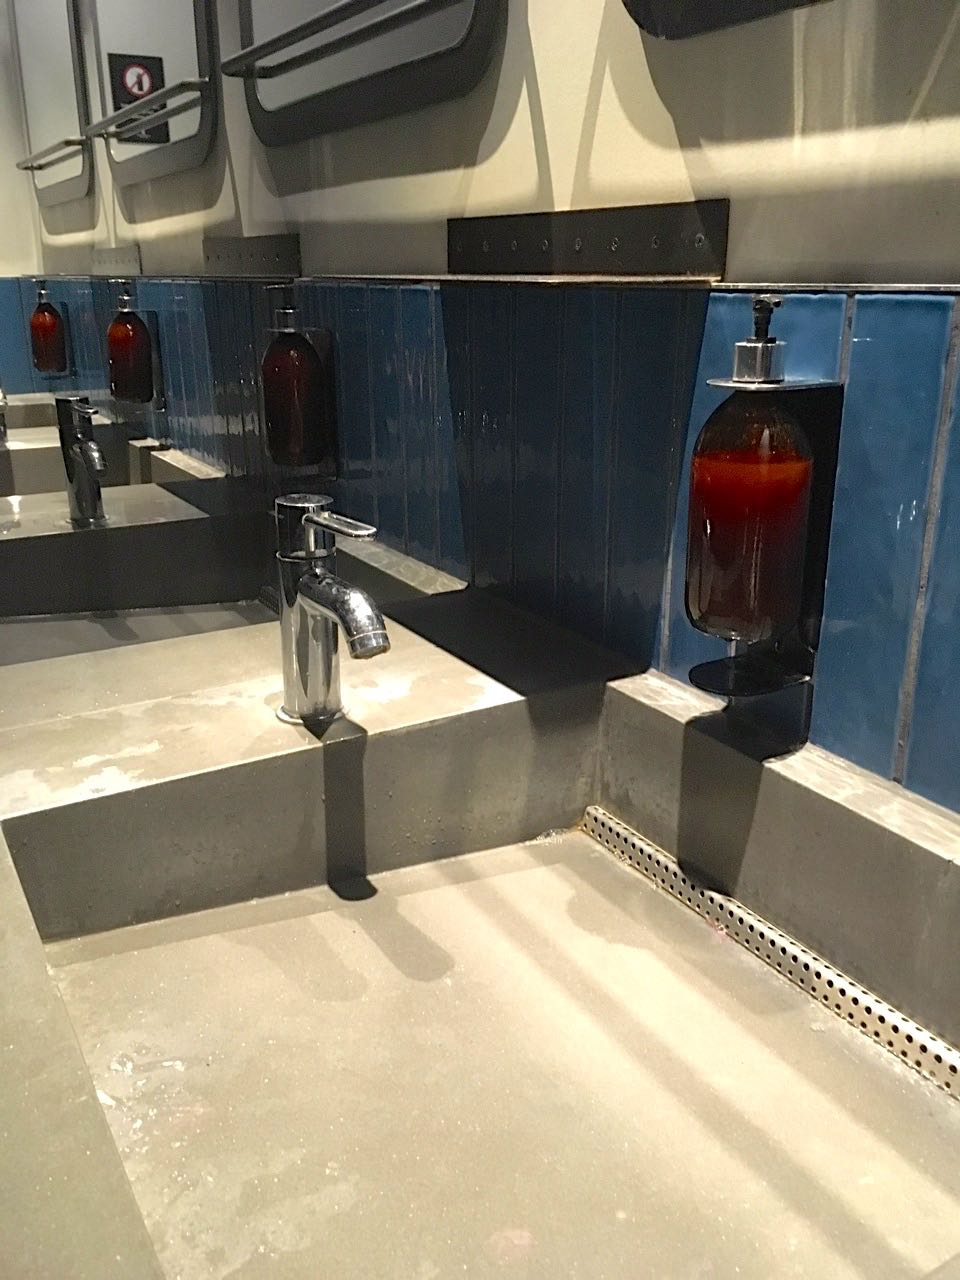 concrete sinks and blue tiles